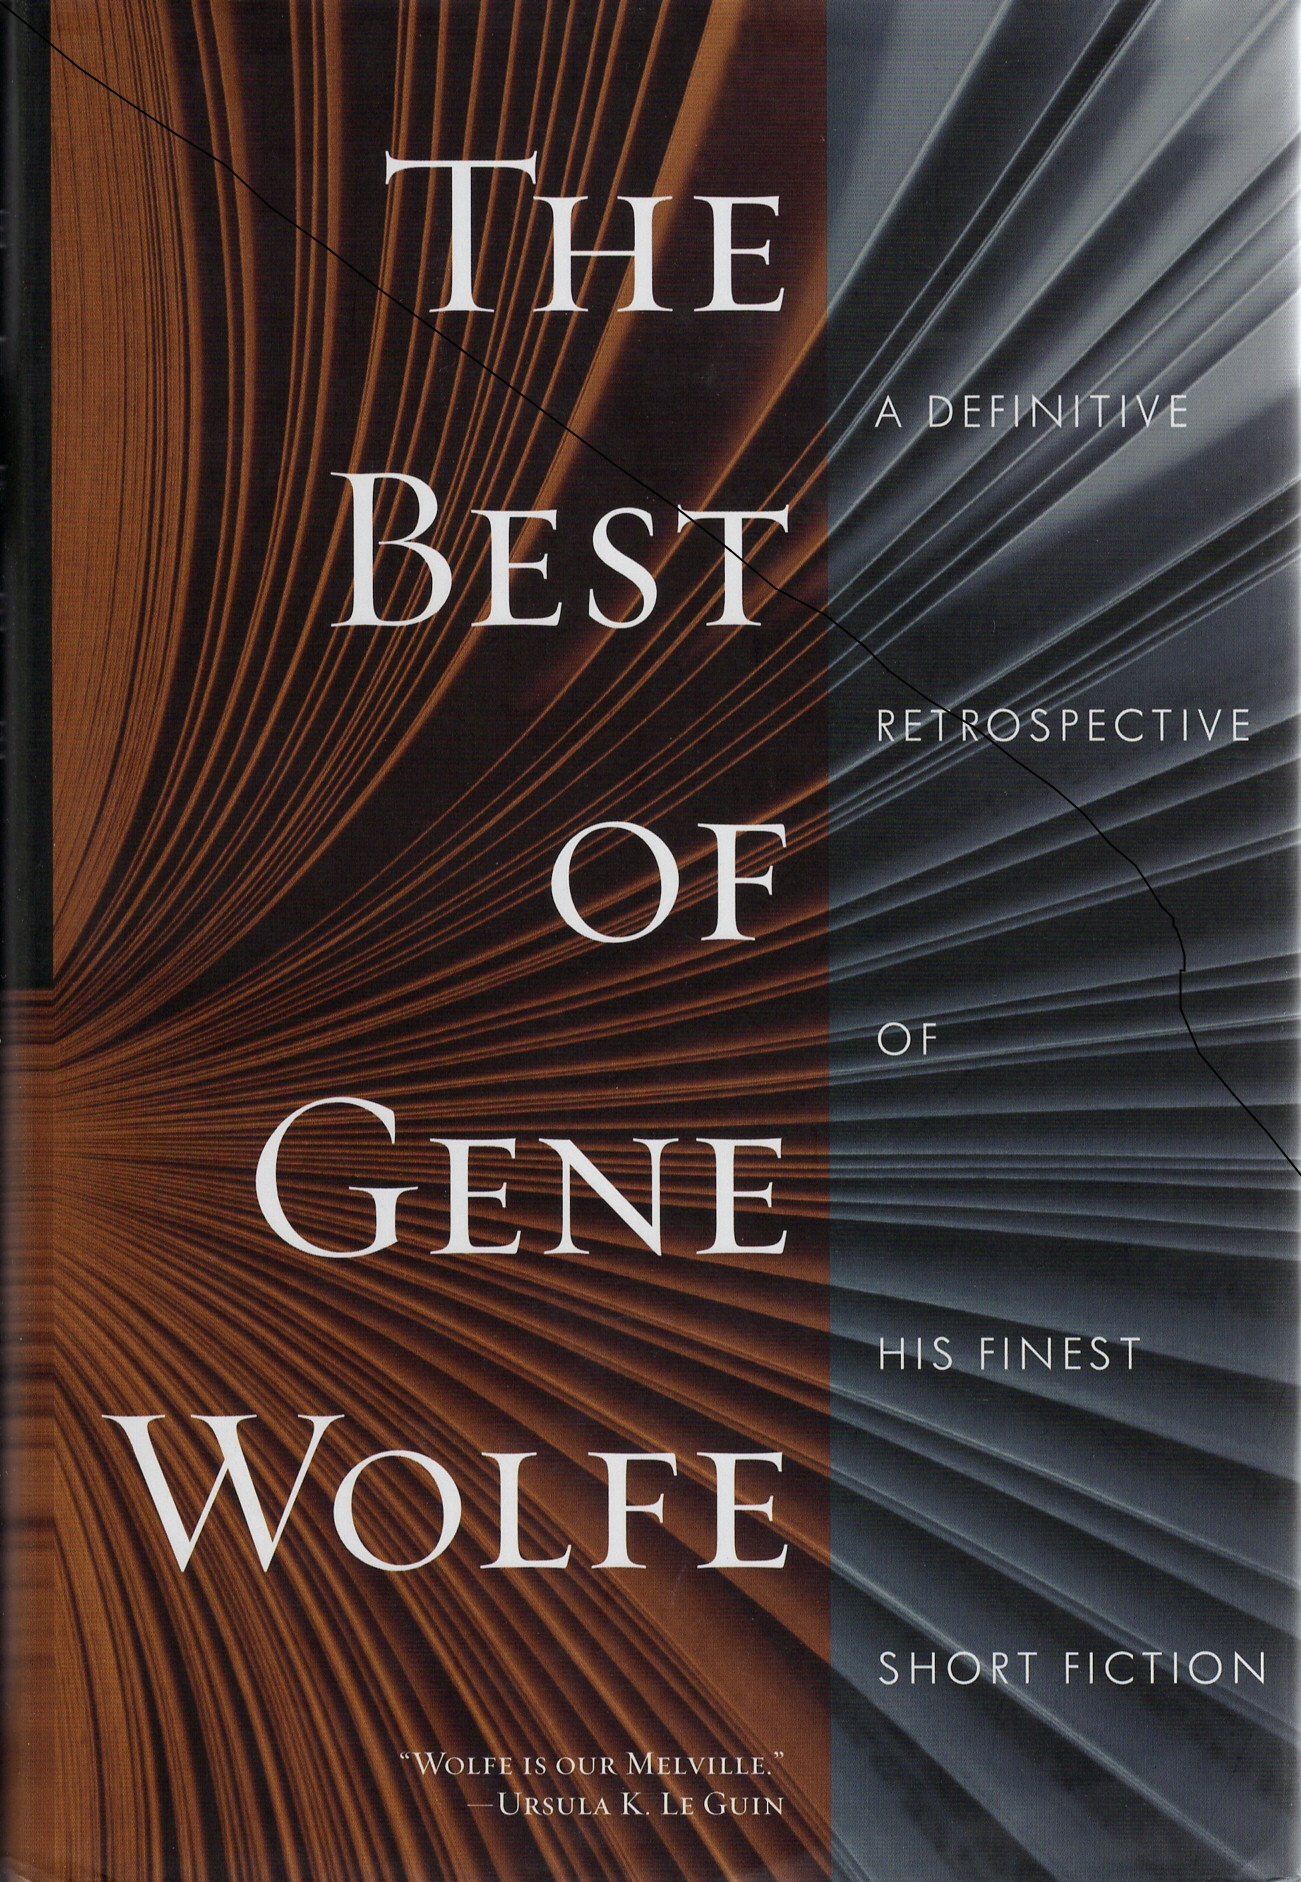 The Best of Gene Wolfe: A Definitive Retrospective of His Finest Short Fiction